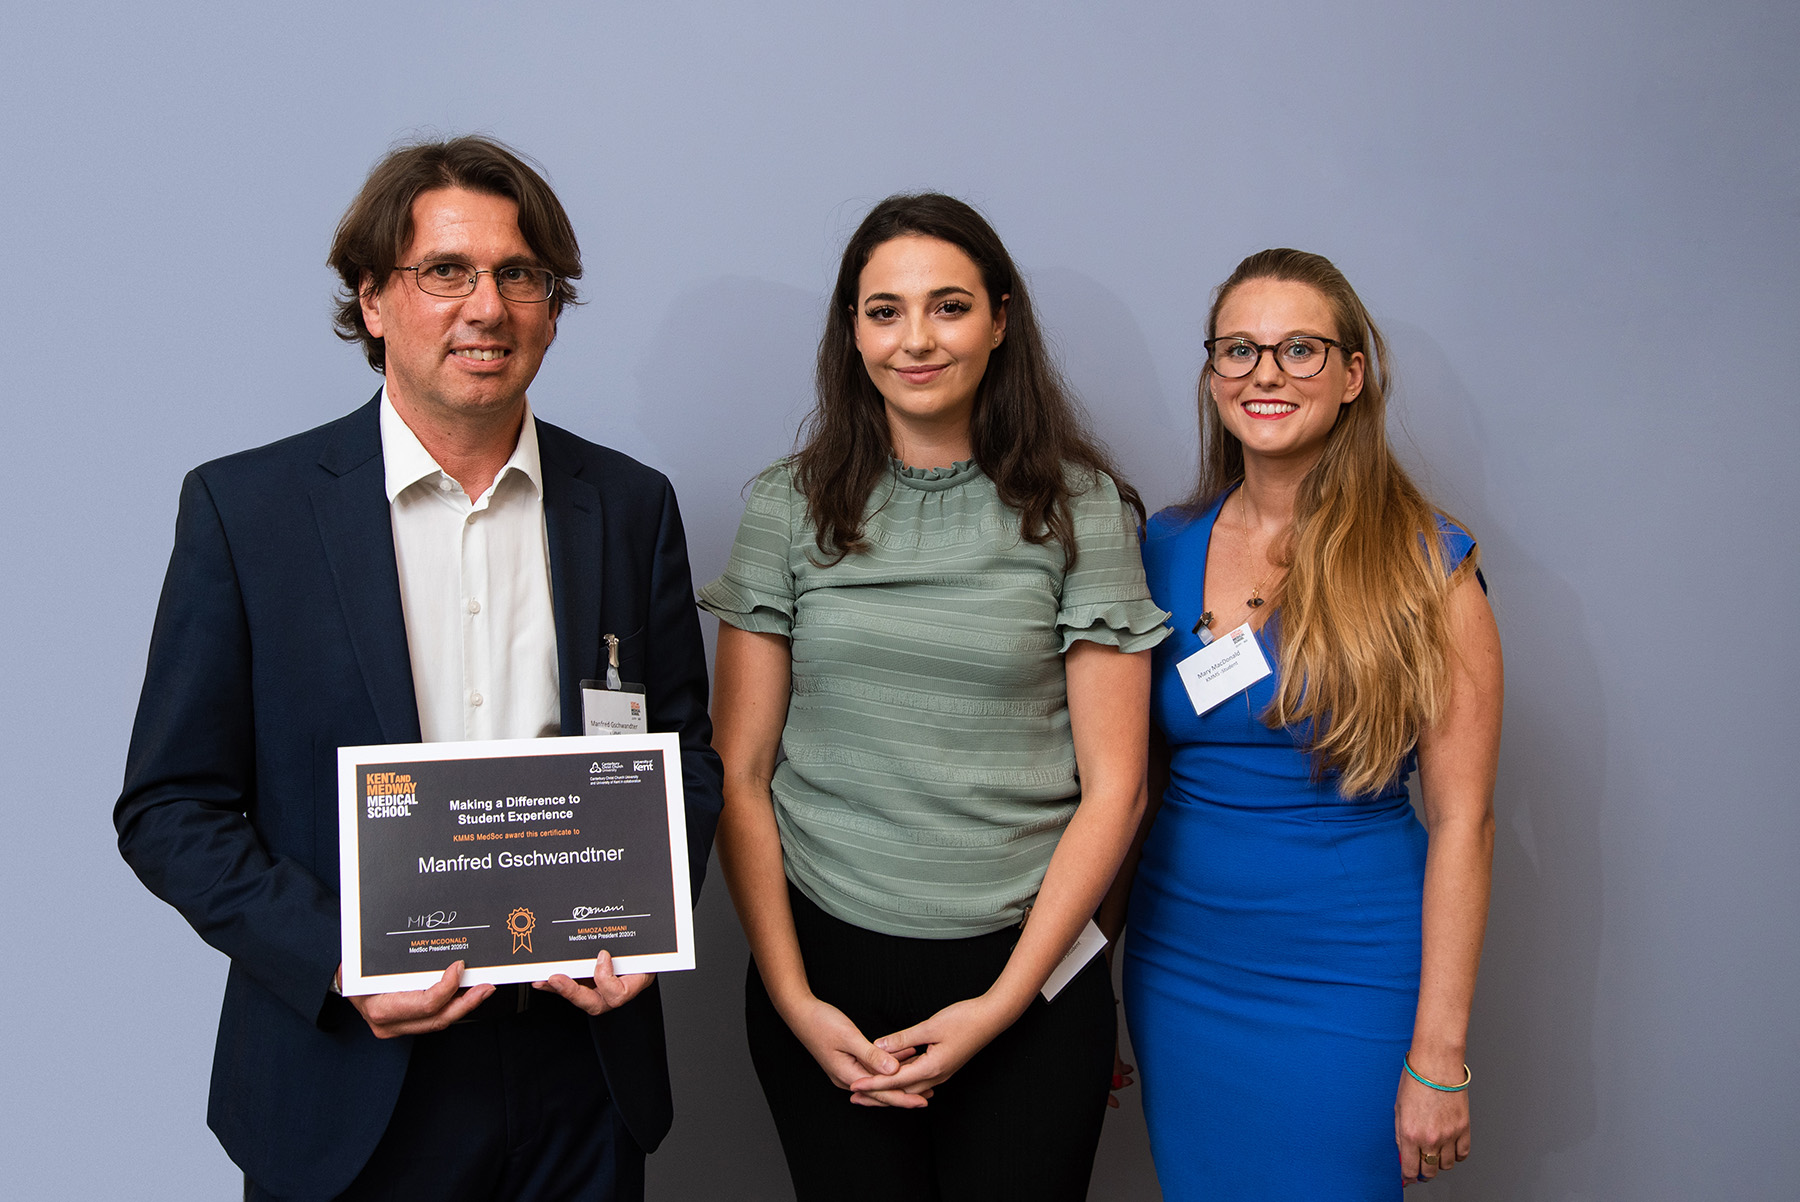 Manfred Gschwandtner is presented his award by Mimoza Osmani, Vice-President and Mary McDonald, President, MedSoc